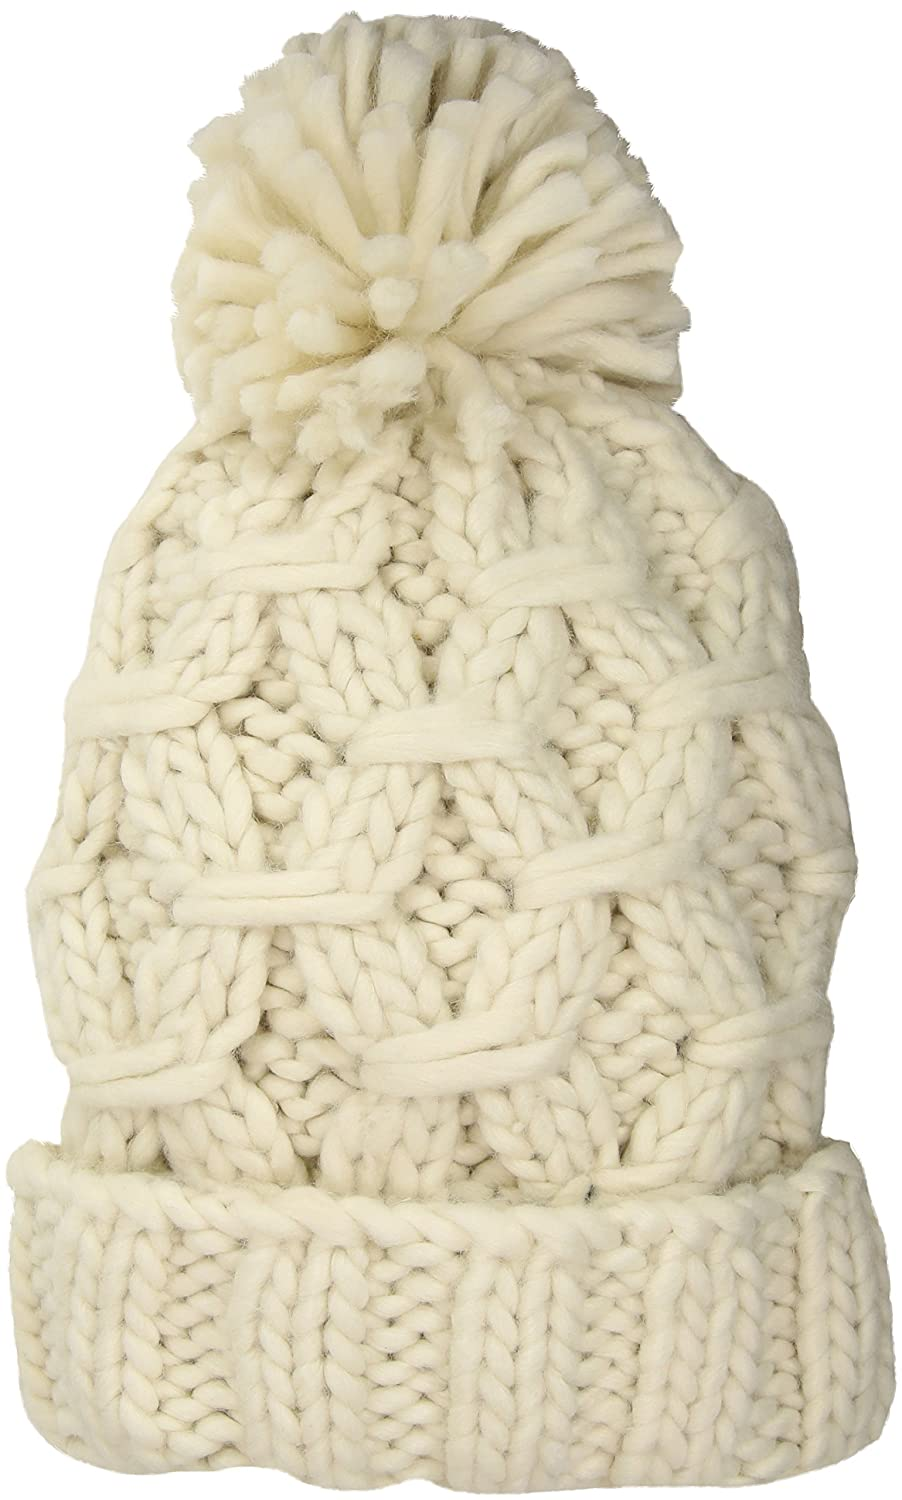 752d6a3bd85 San Diego Hat Company Women s Crochet Chunky Yarn Beanie with A Cuff   Pom  Ivory One Size at Amazon Women s Clothing store